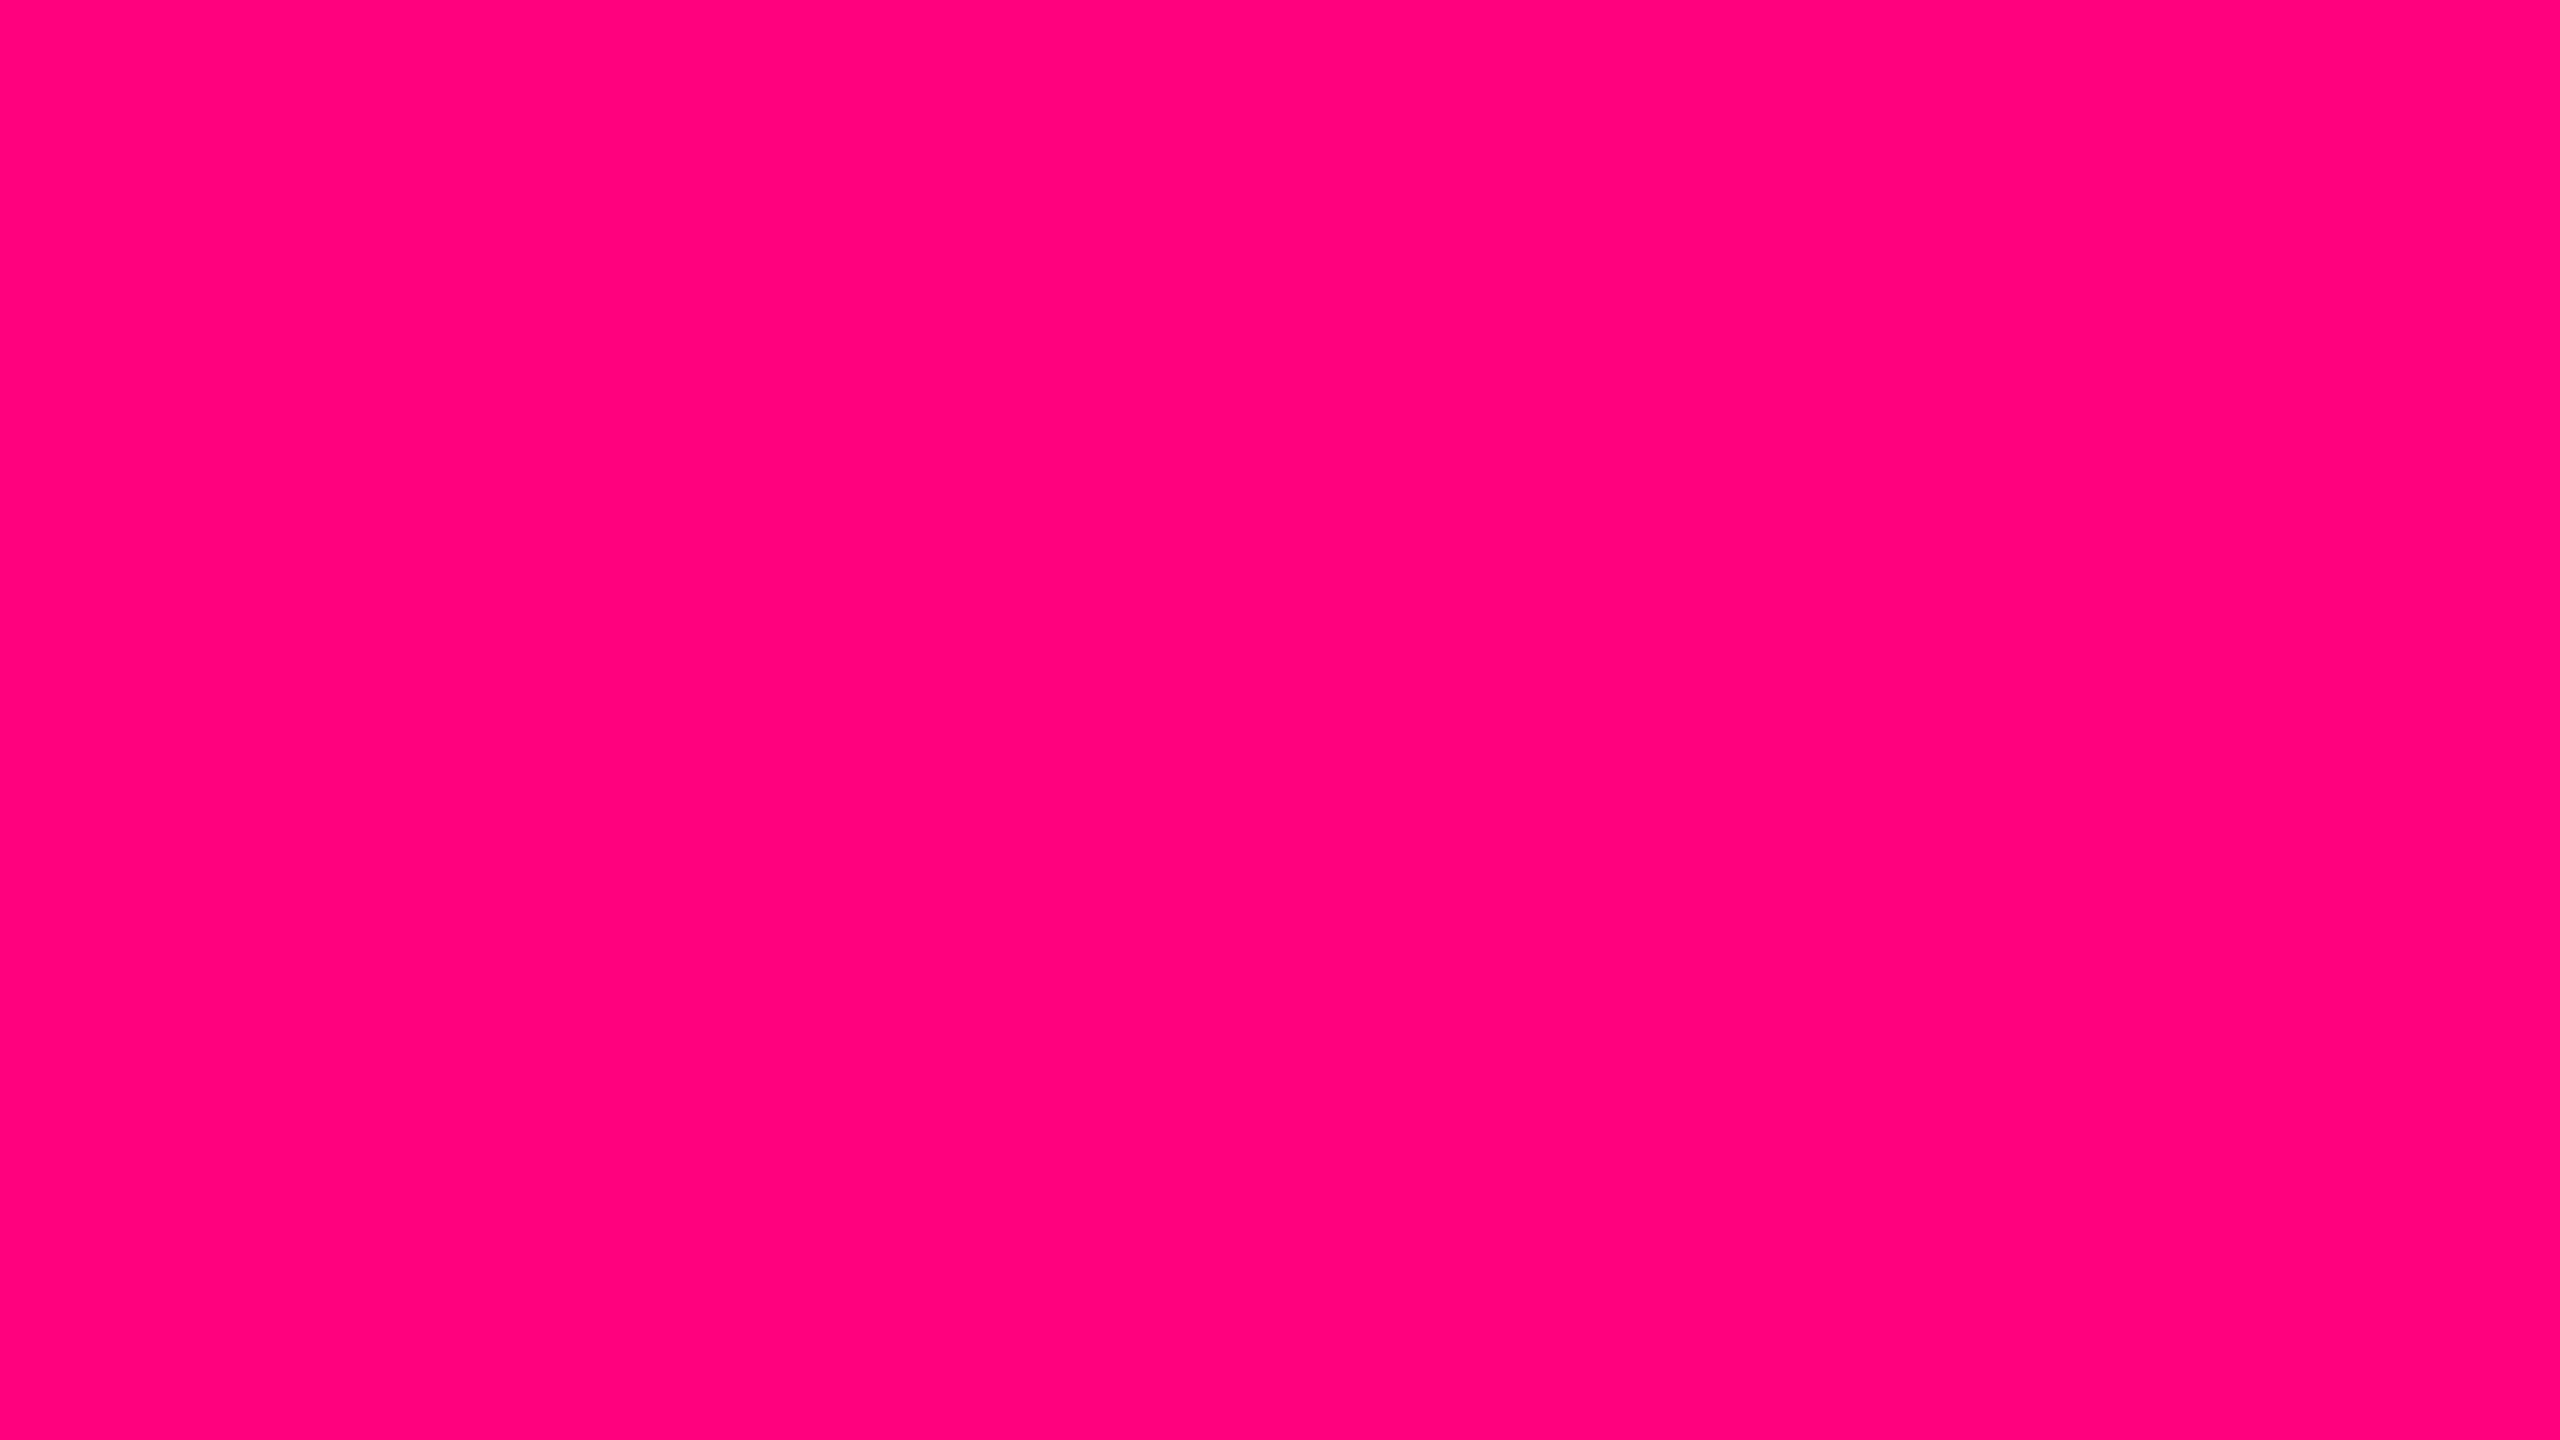 2560x1440 Bright Pink Solid Color Background